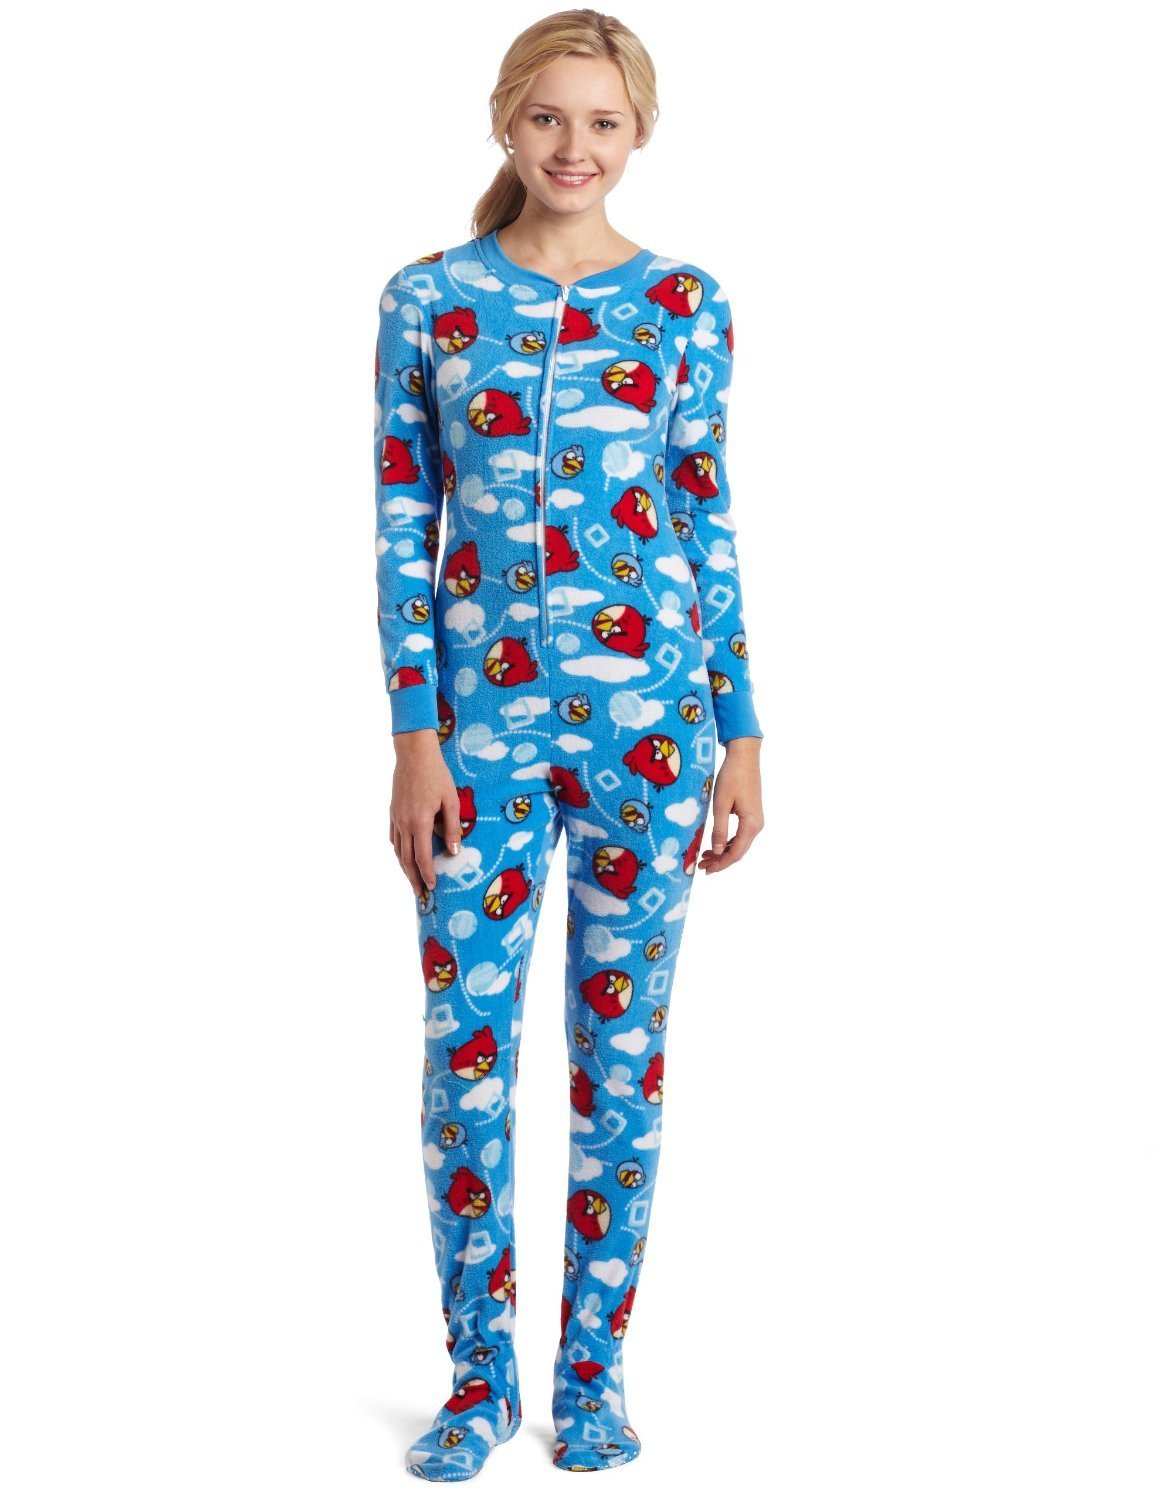 Fashion trends: Footie pajamas for women - adult onesies